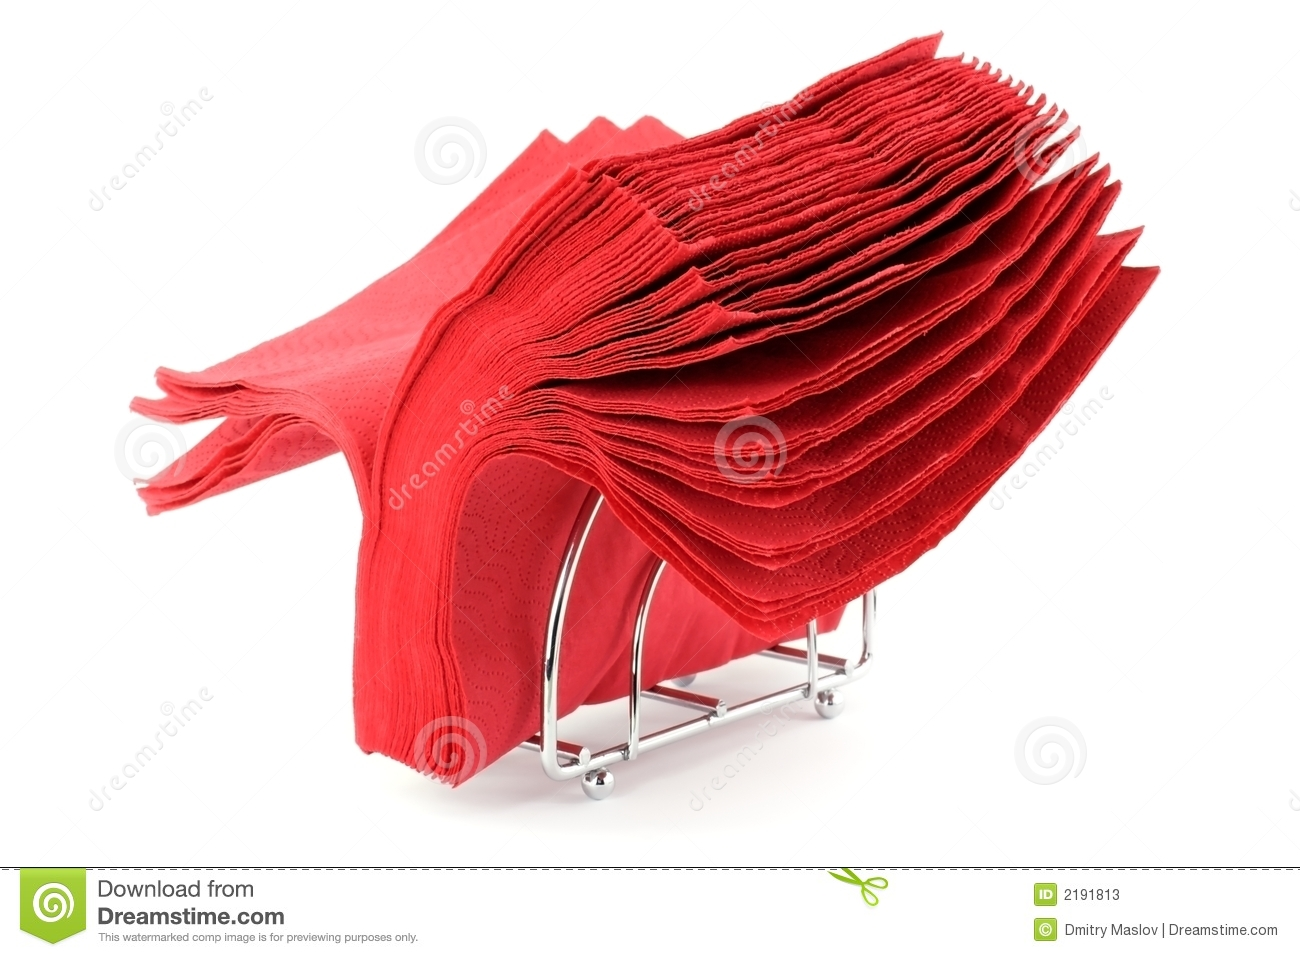 Napkins Stock Photos - Image: 2191813